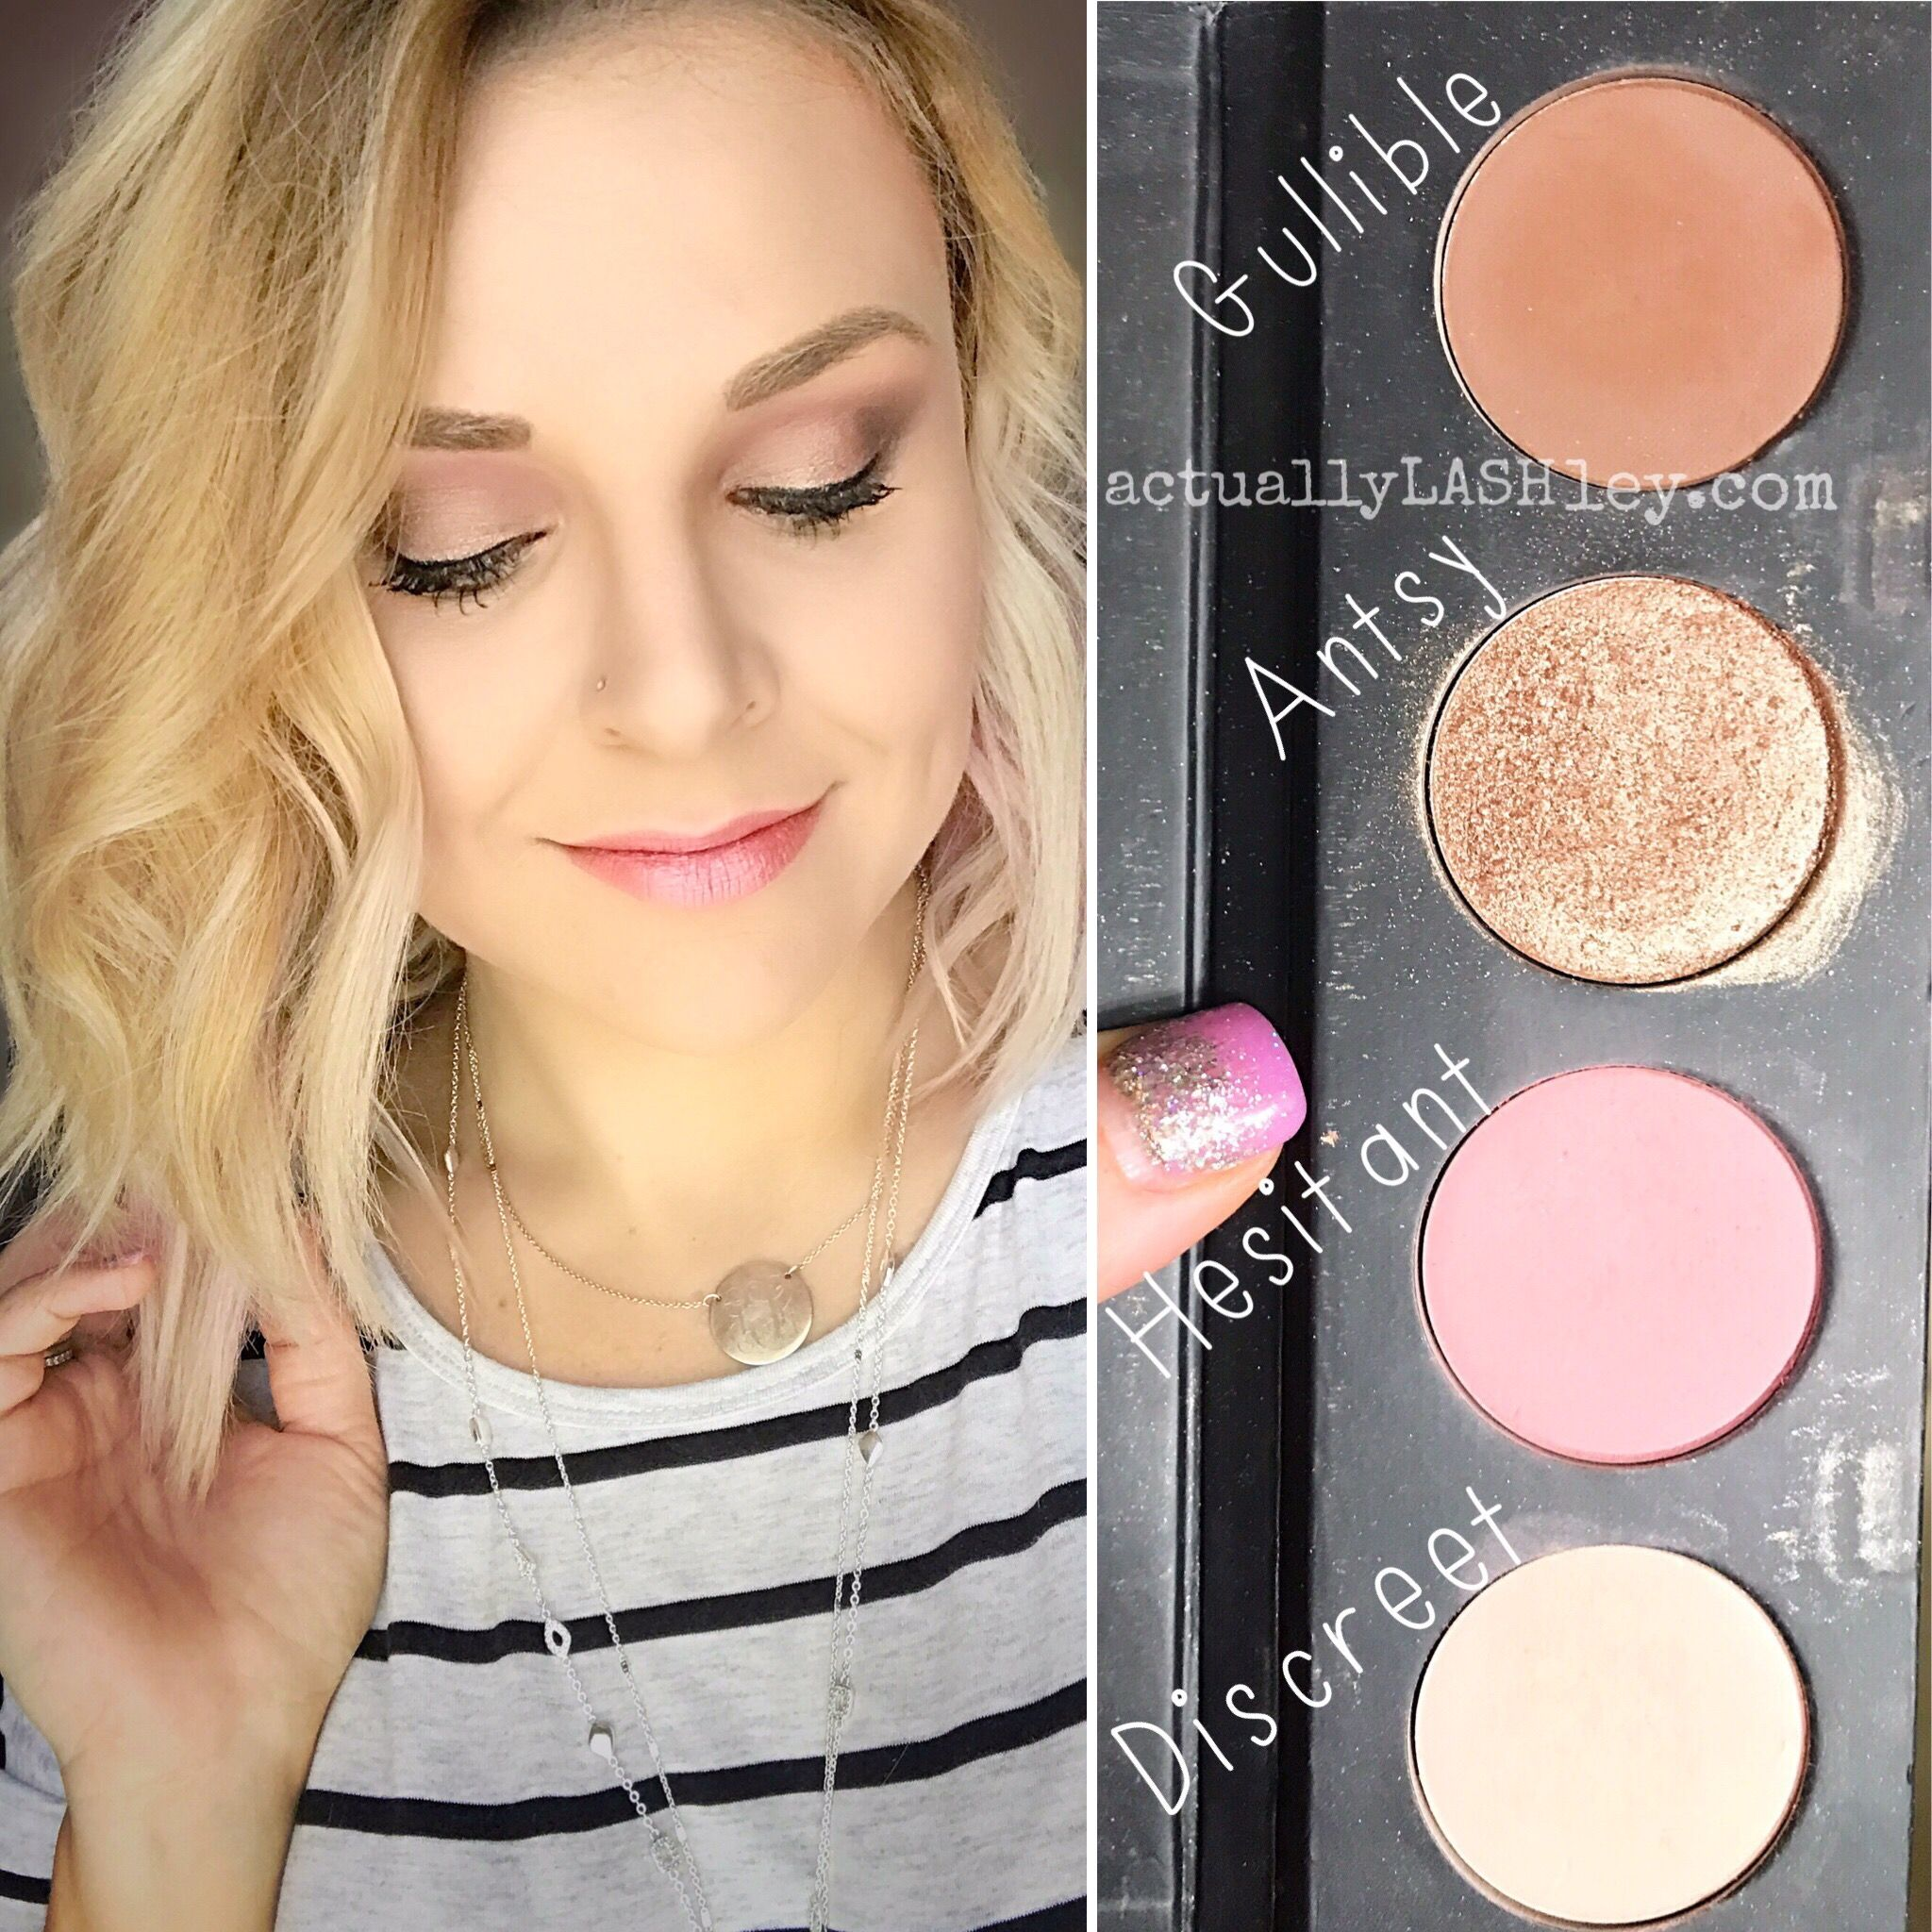 Younique pressed shadows in discreet. Hesitant, antsy and gullible. #youniquepressedshadows